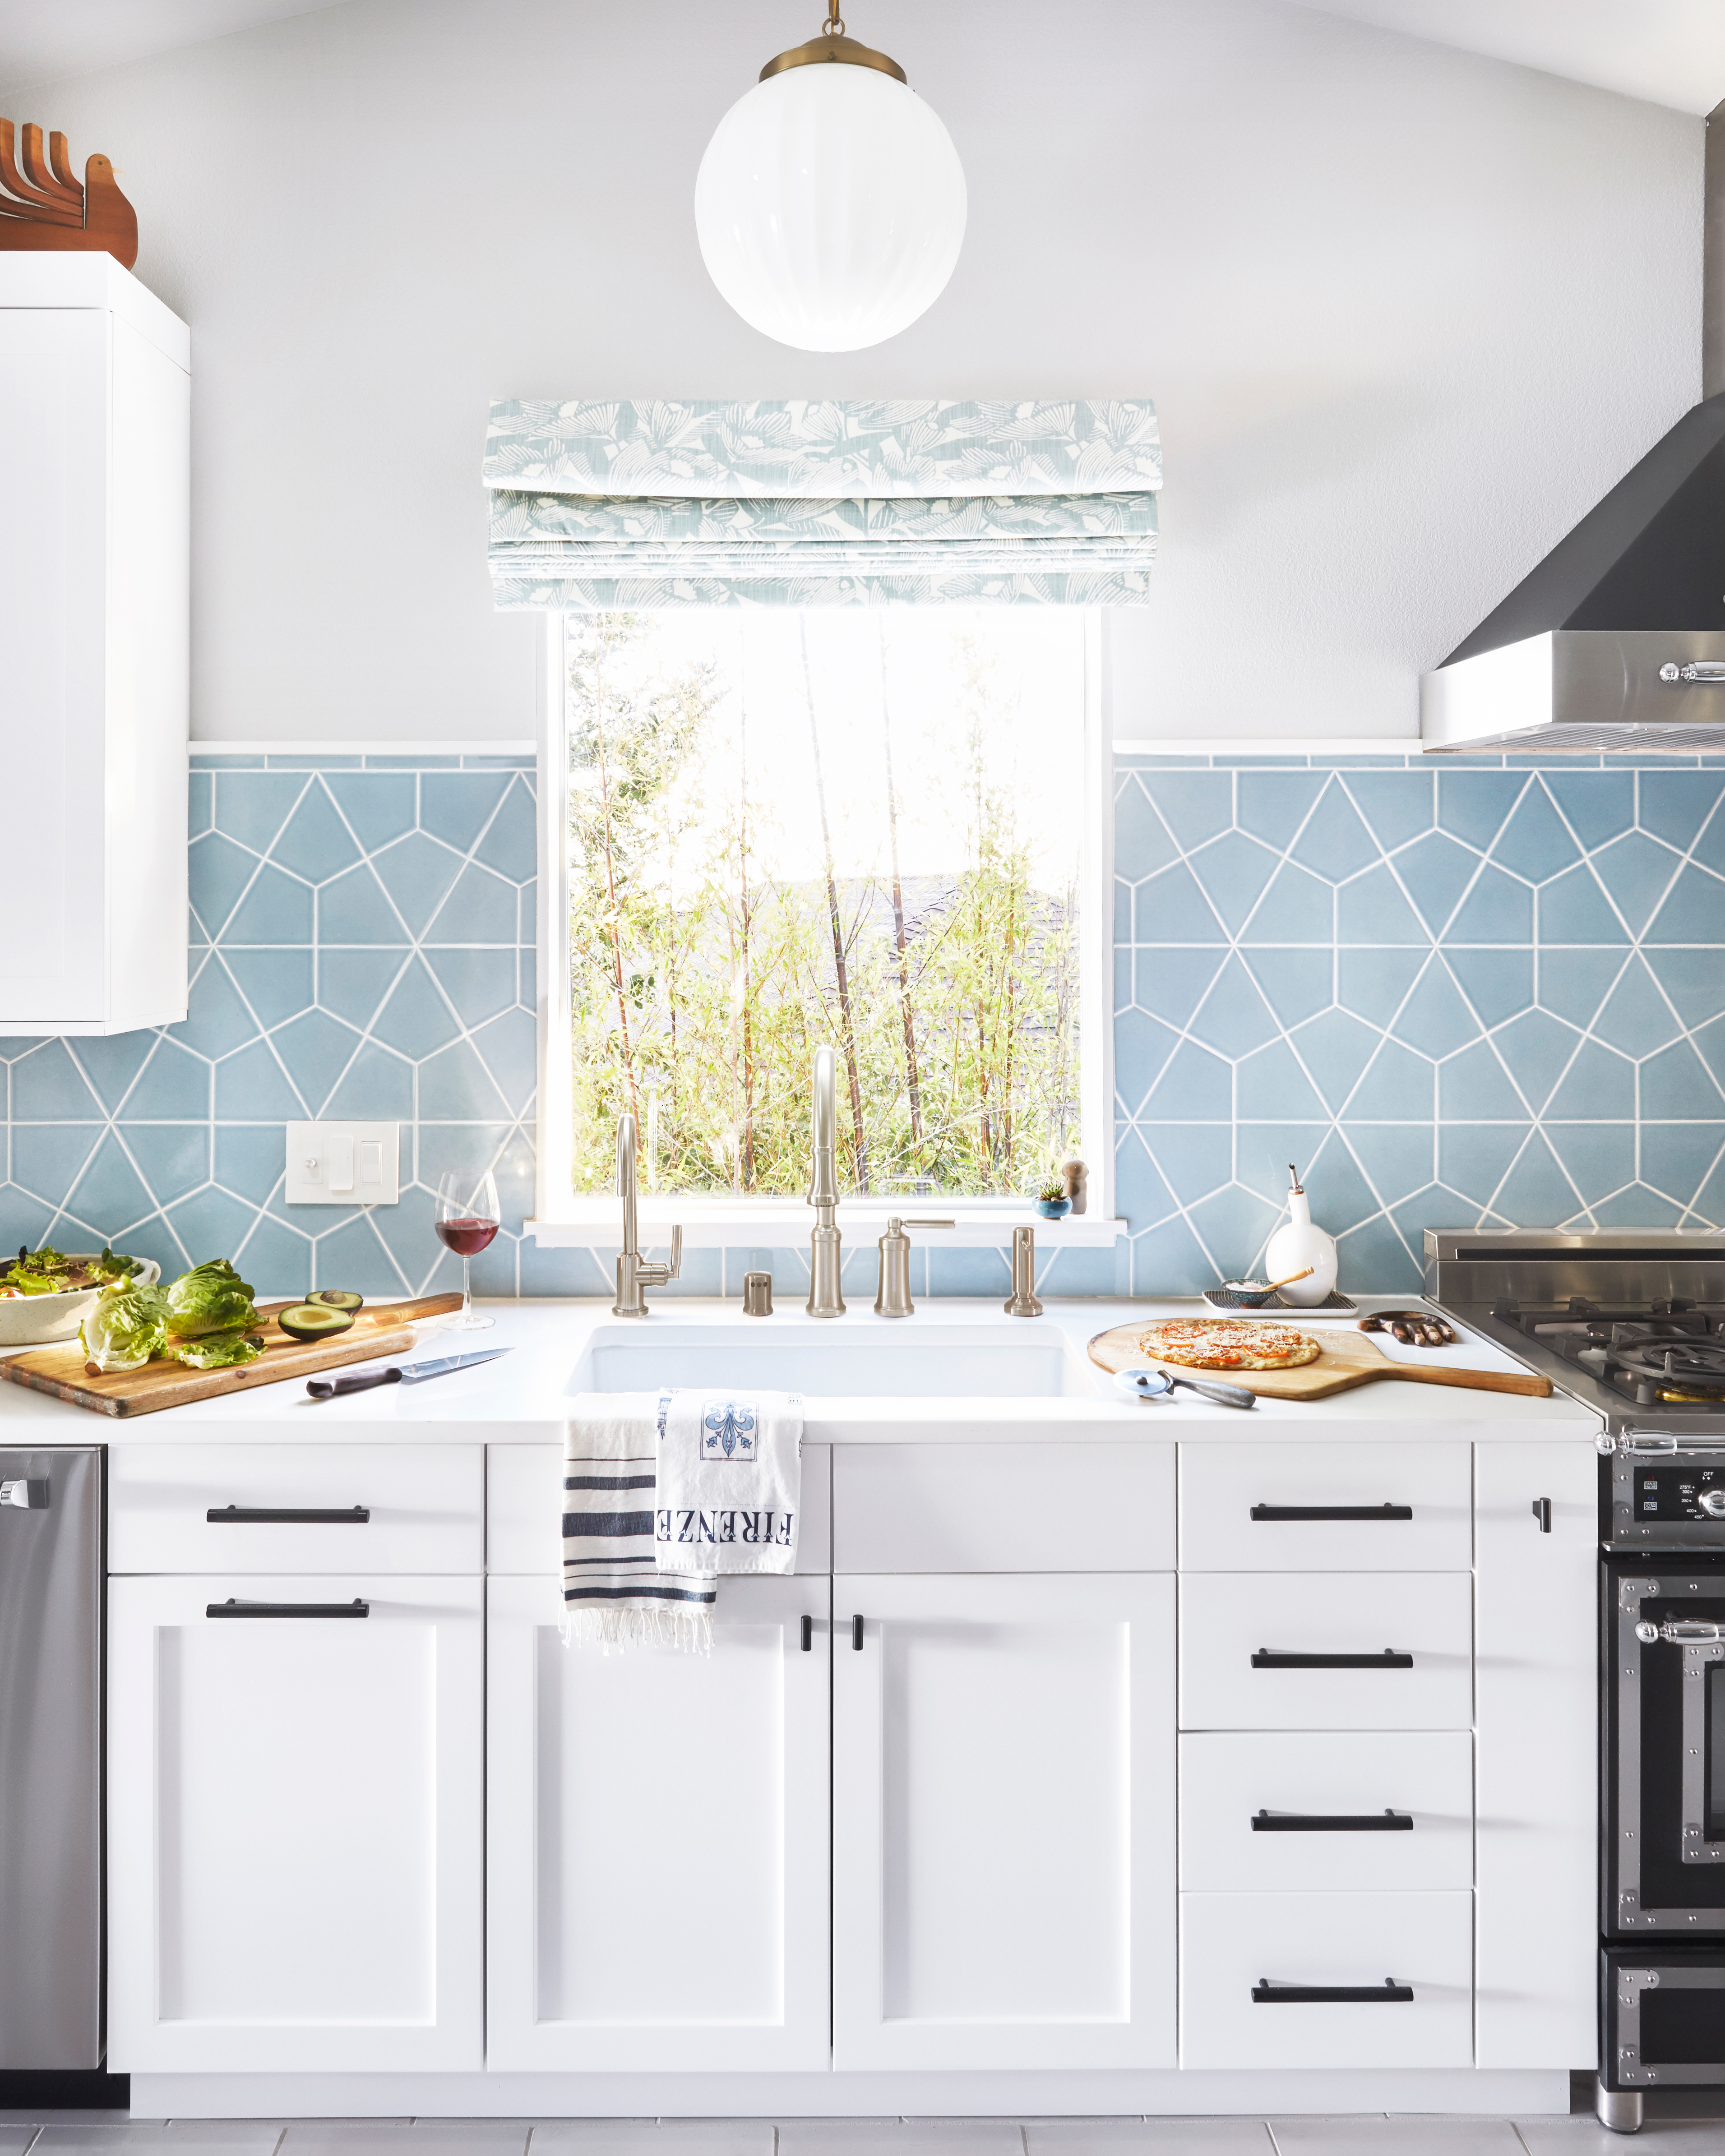 Orlando Soria's family kitchen reveal, featuring our Hexite tiles in Crater Lake.